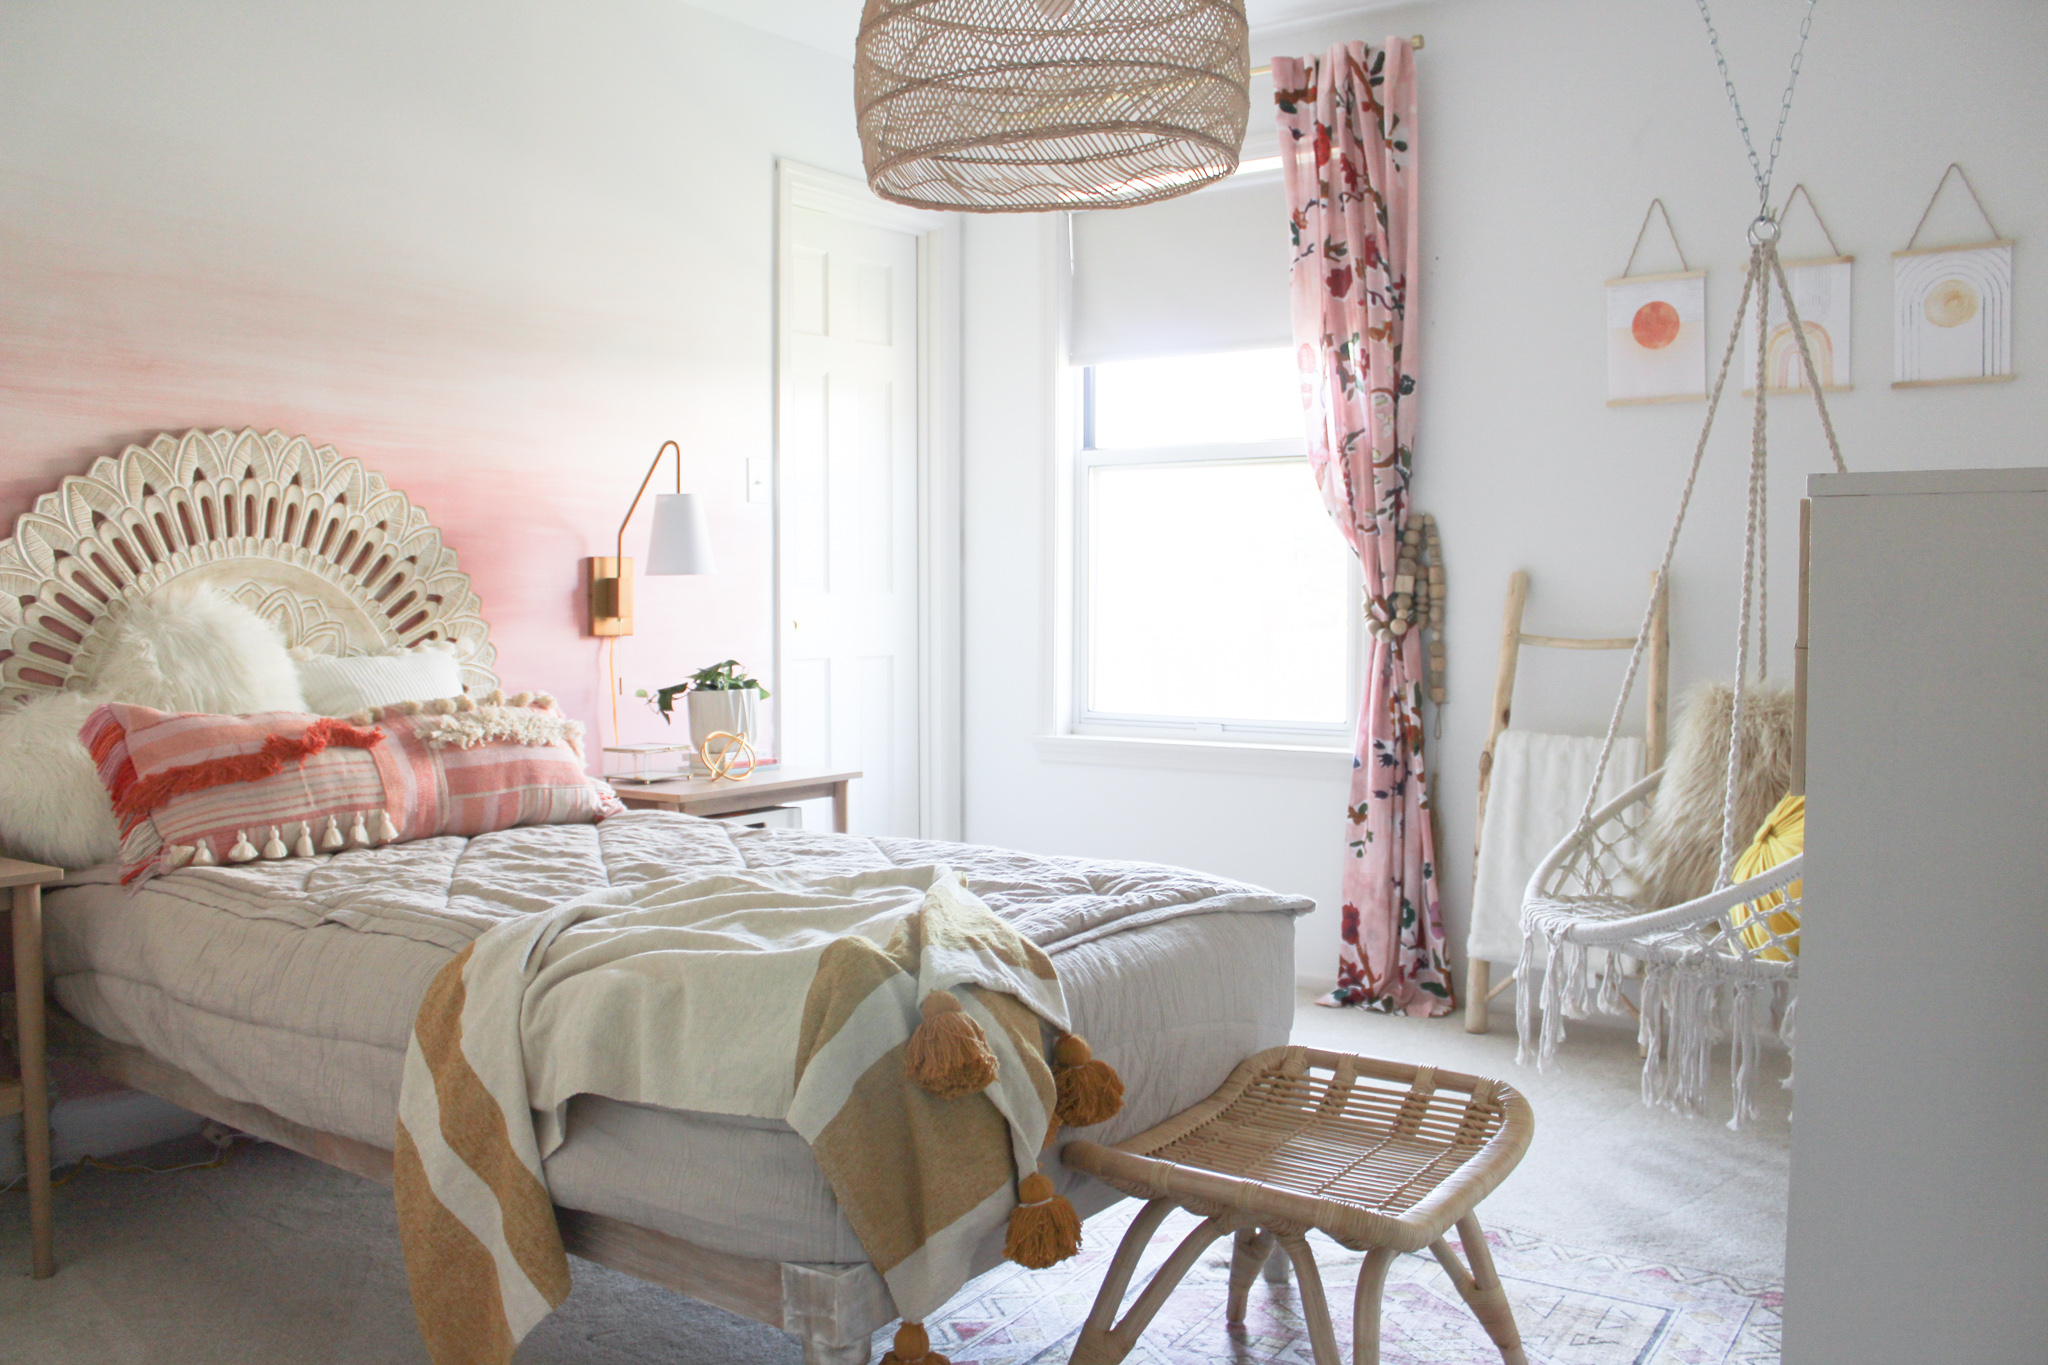 Girl's Room with DIY Ombre Wall Mural